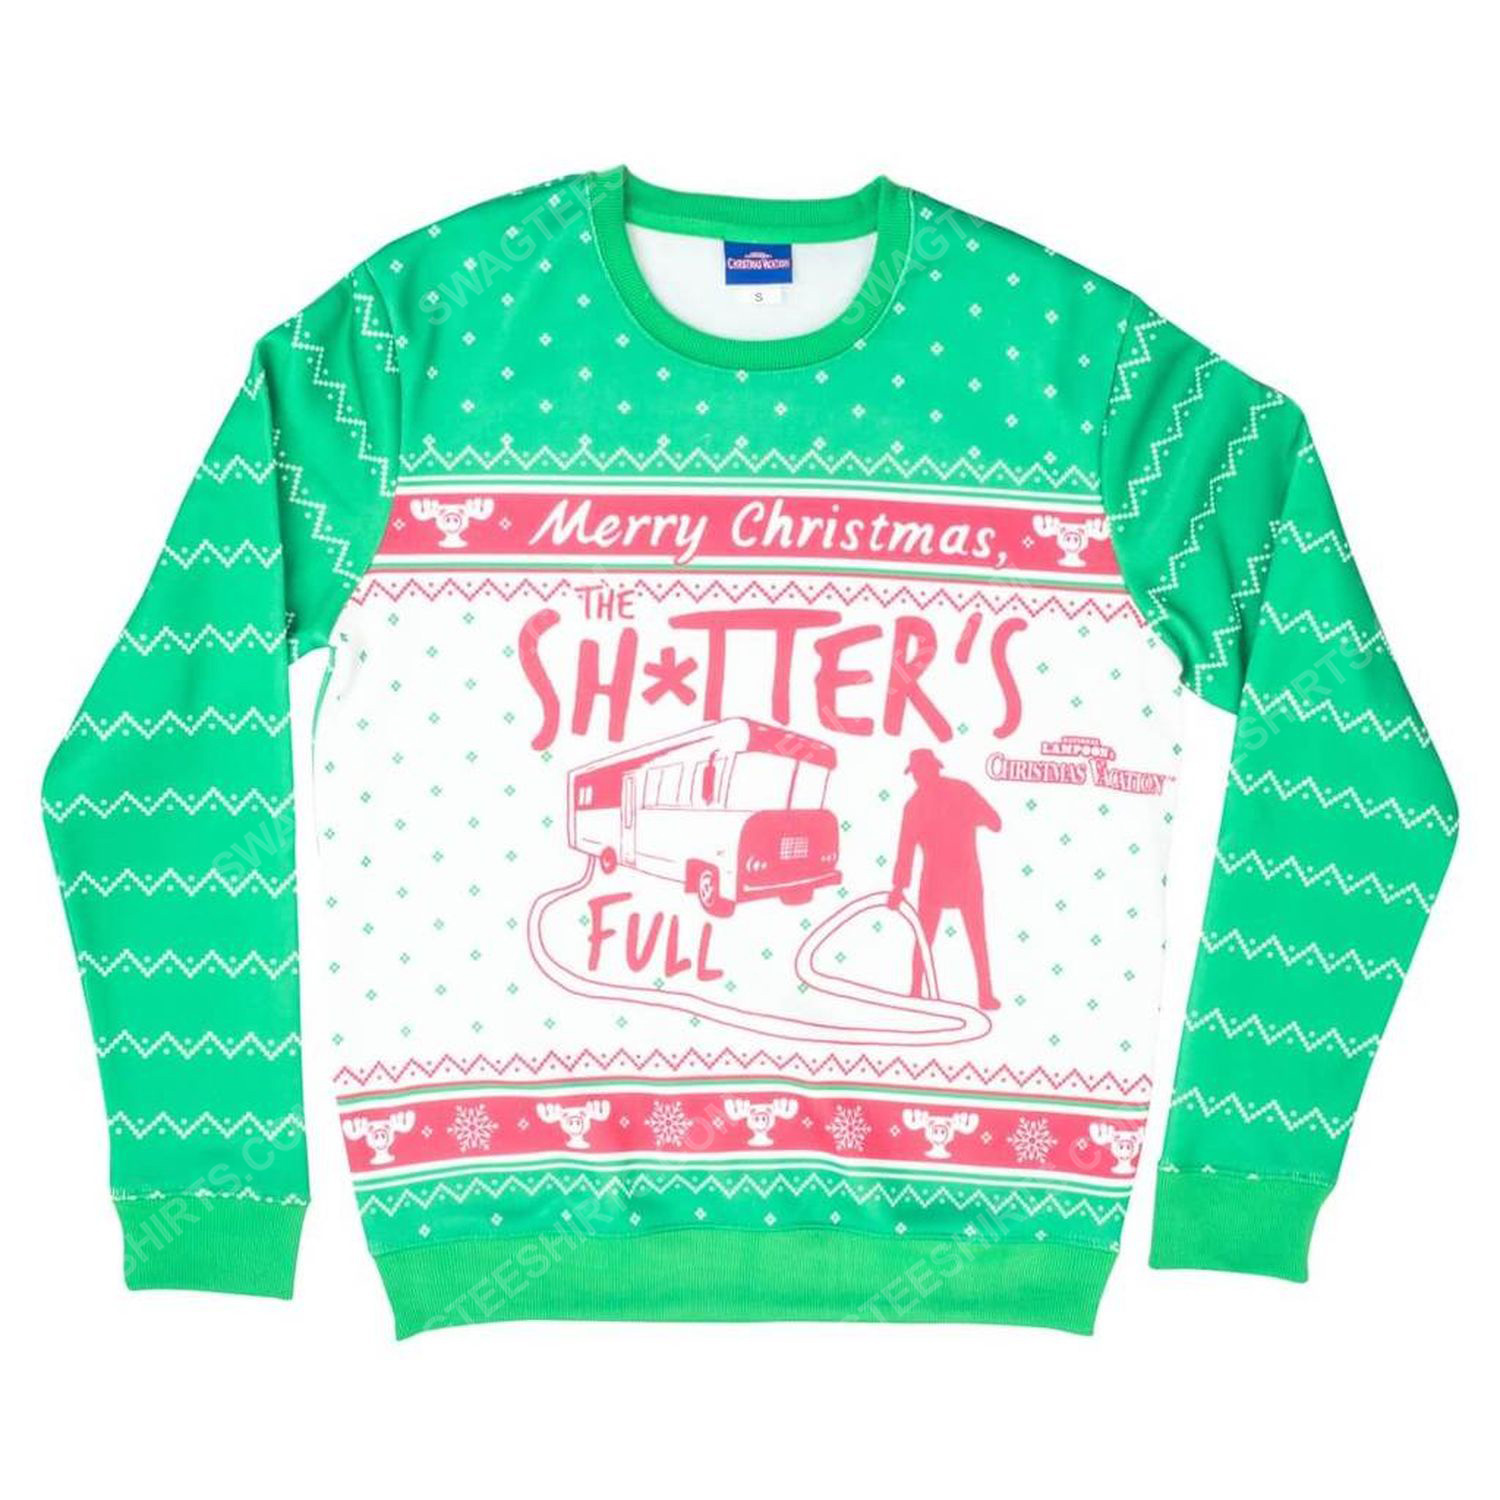 National lampoon's christmas vacation merry christmas shitter was full ugly christmas sweater 2 - Copy (2)